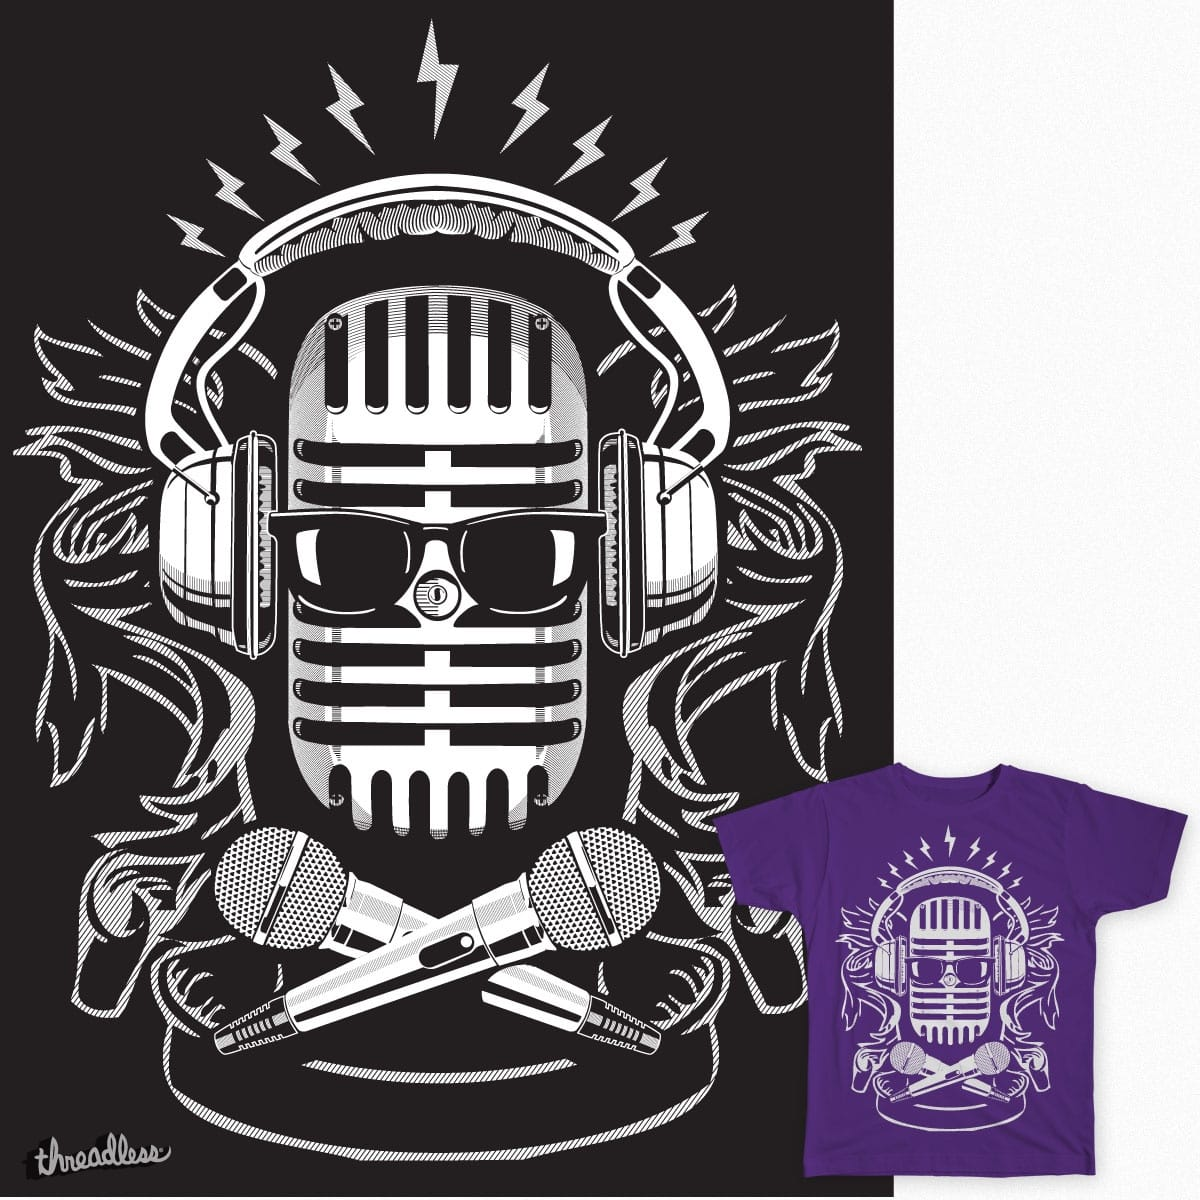 SOUND AND VISION by jonmcgrinder on Threadless